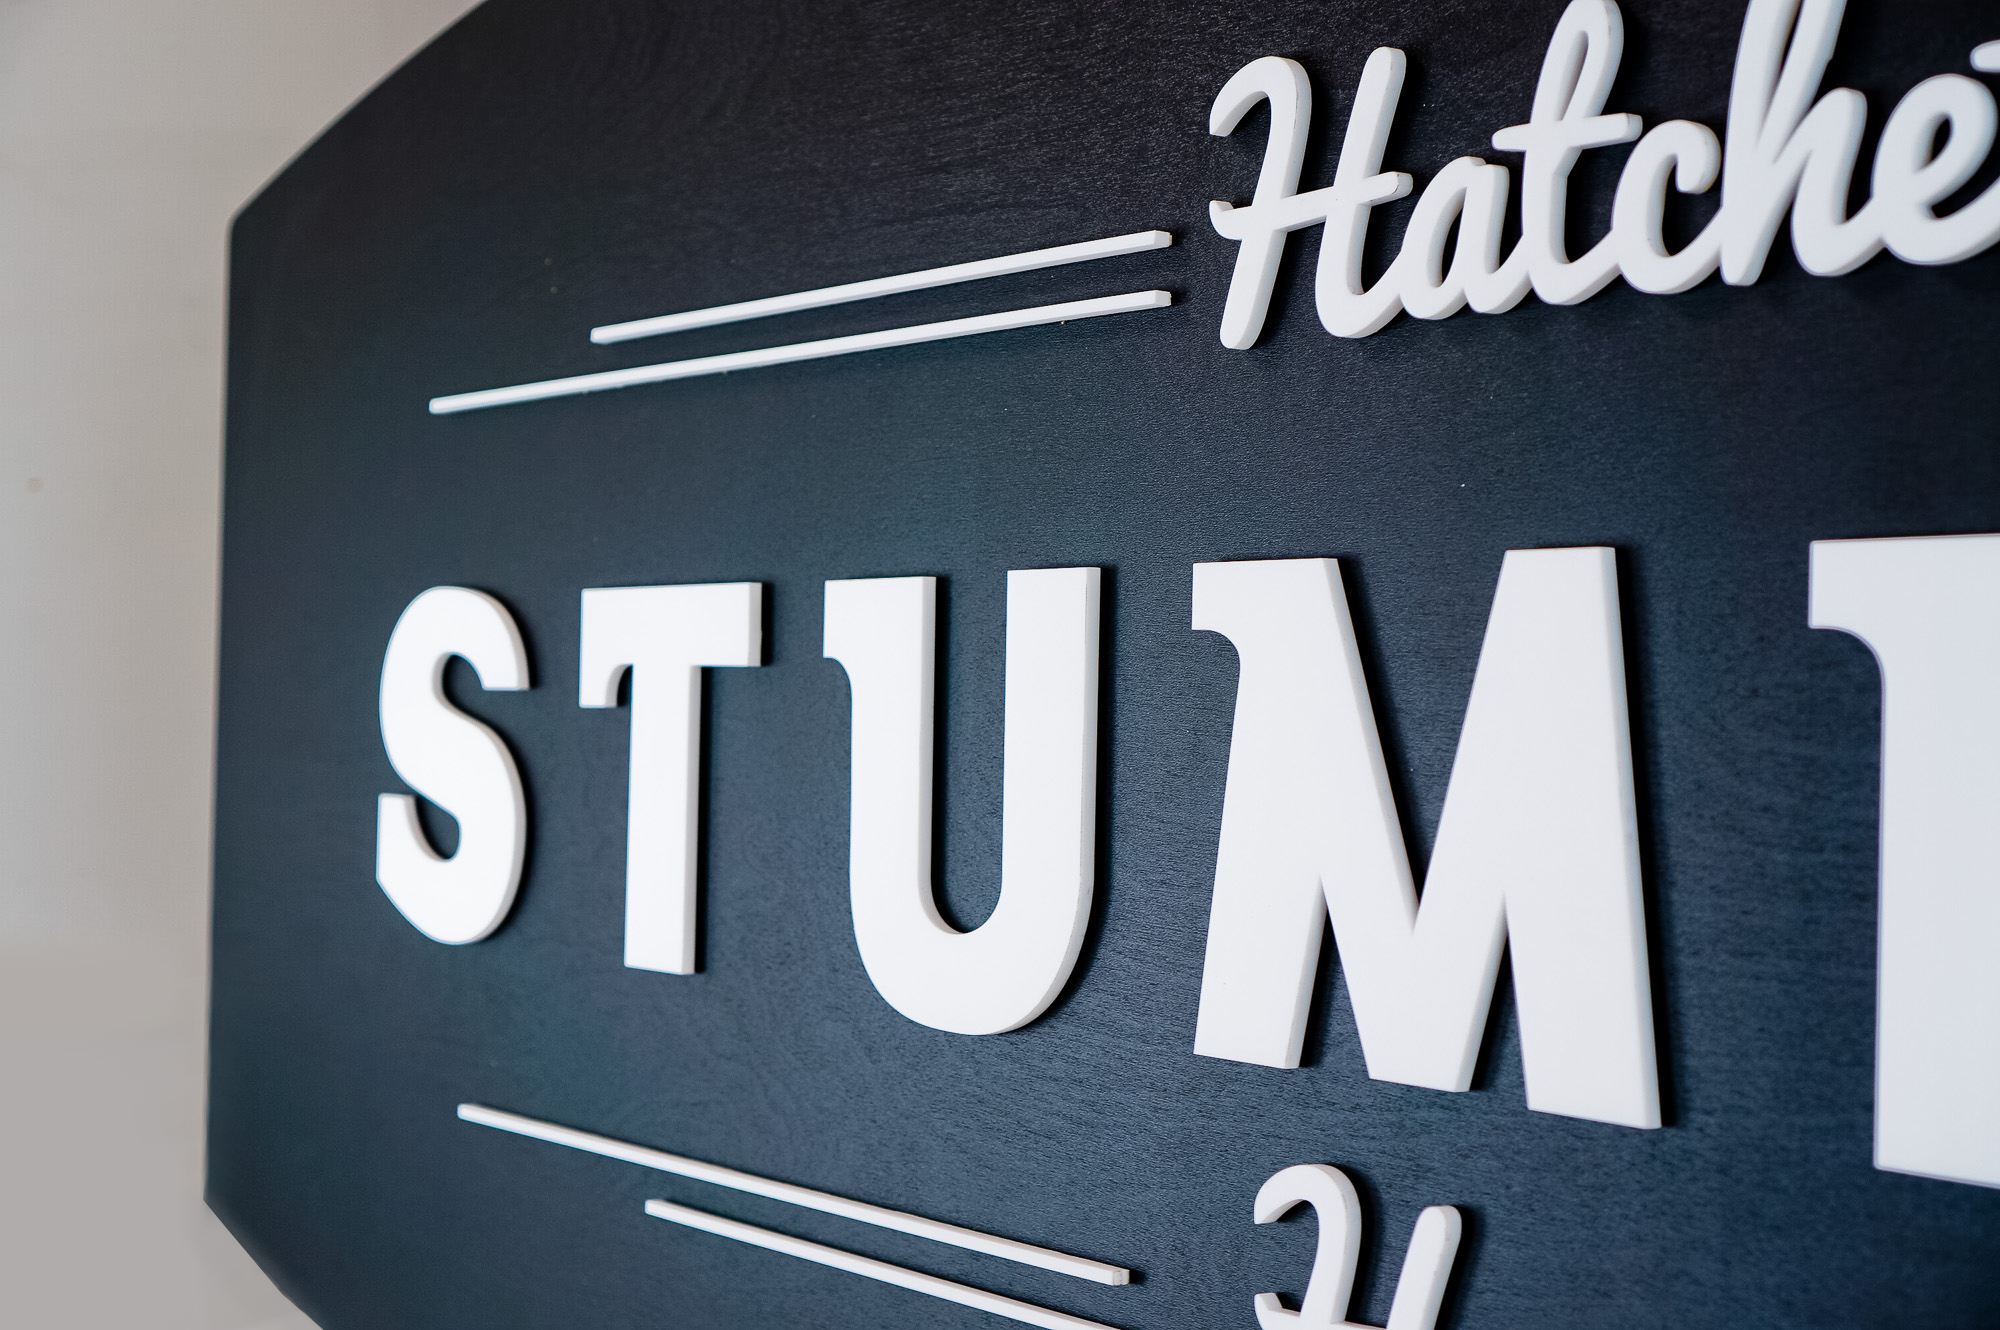 Black and white raised panel sign for Stumpy's, the first hatchet throwing venue in the U.S.